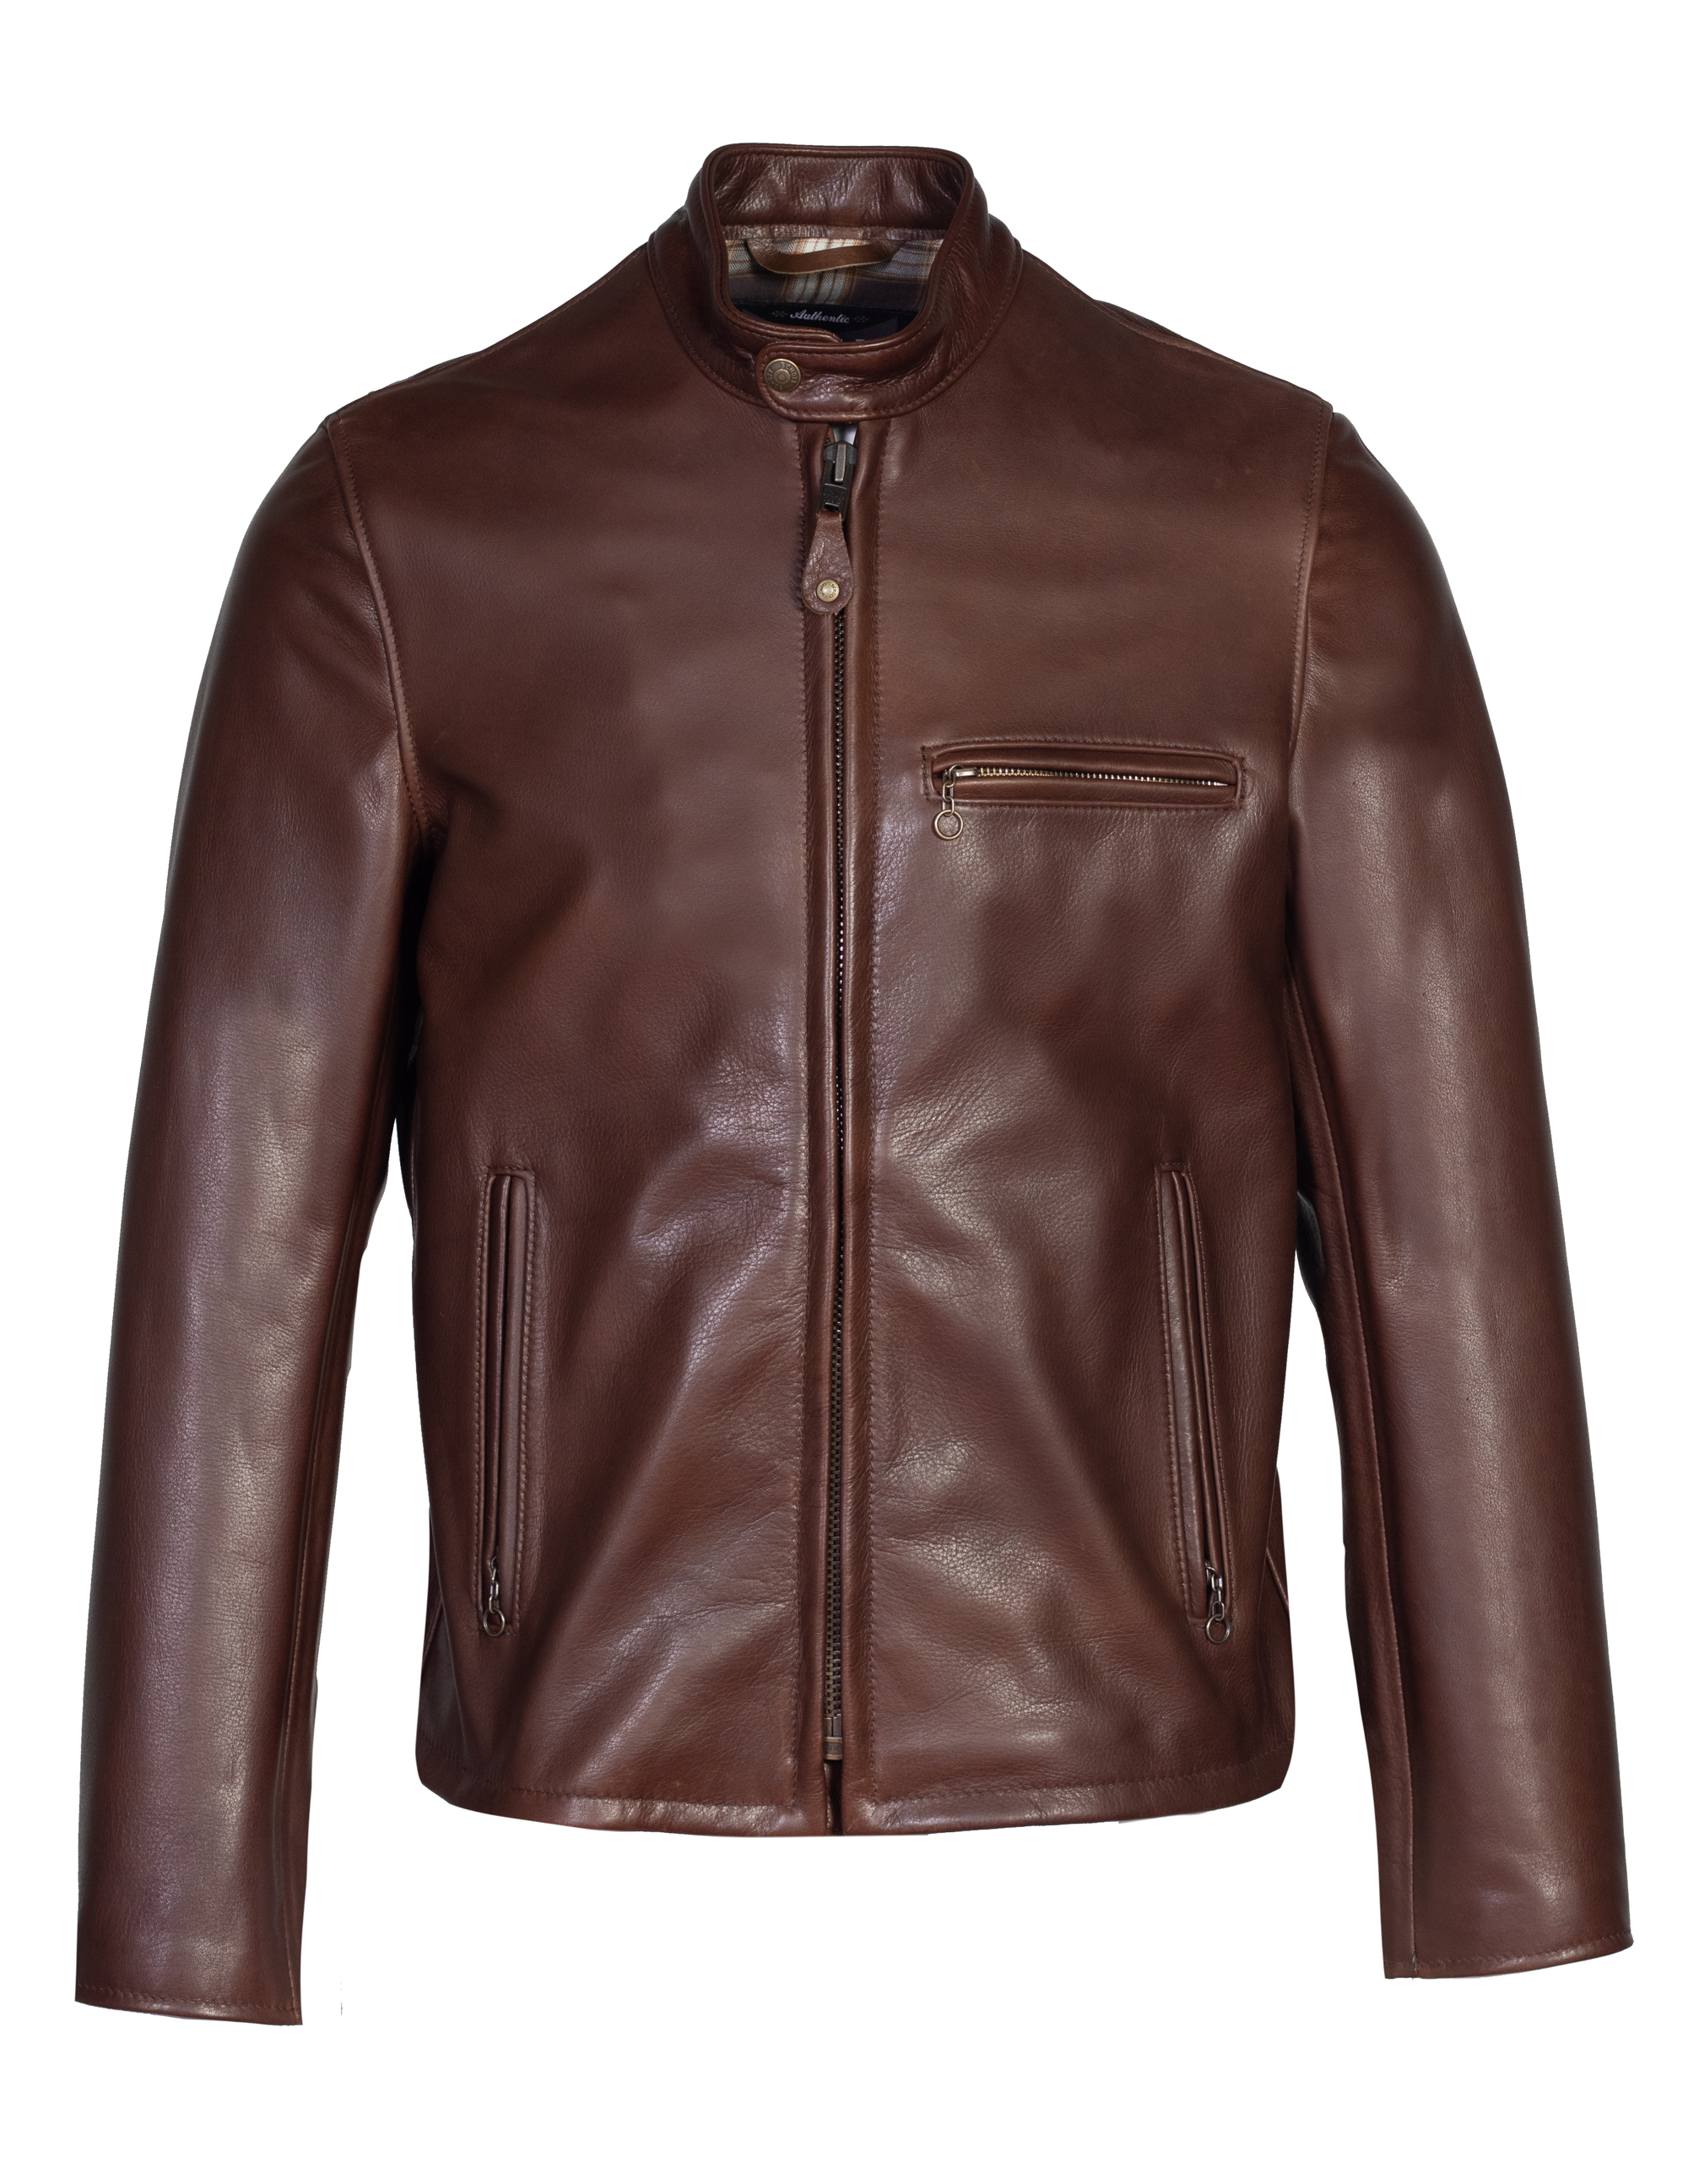 Schott N.Y.C. 530 Waxed Natural Pebbled Cowhide Café Leather Jacket